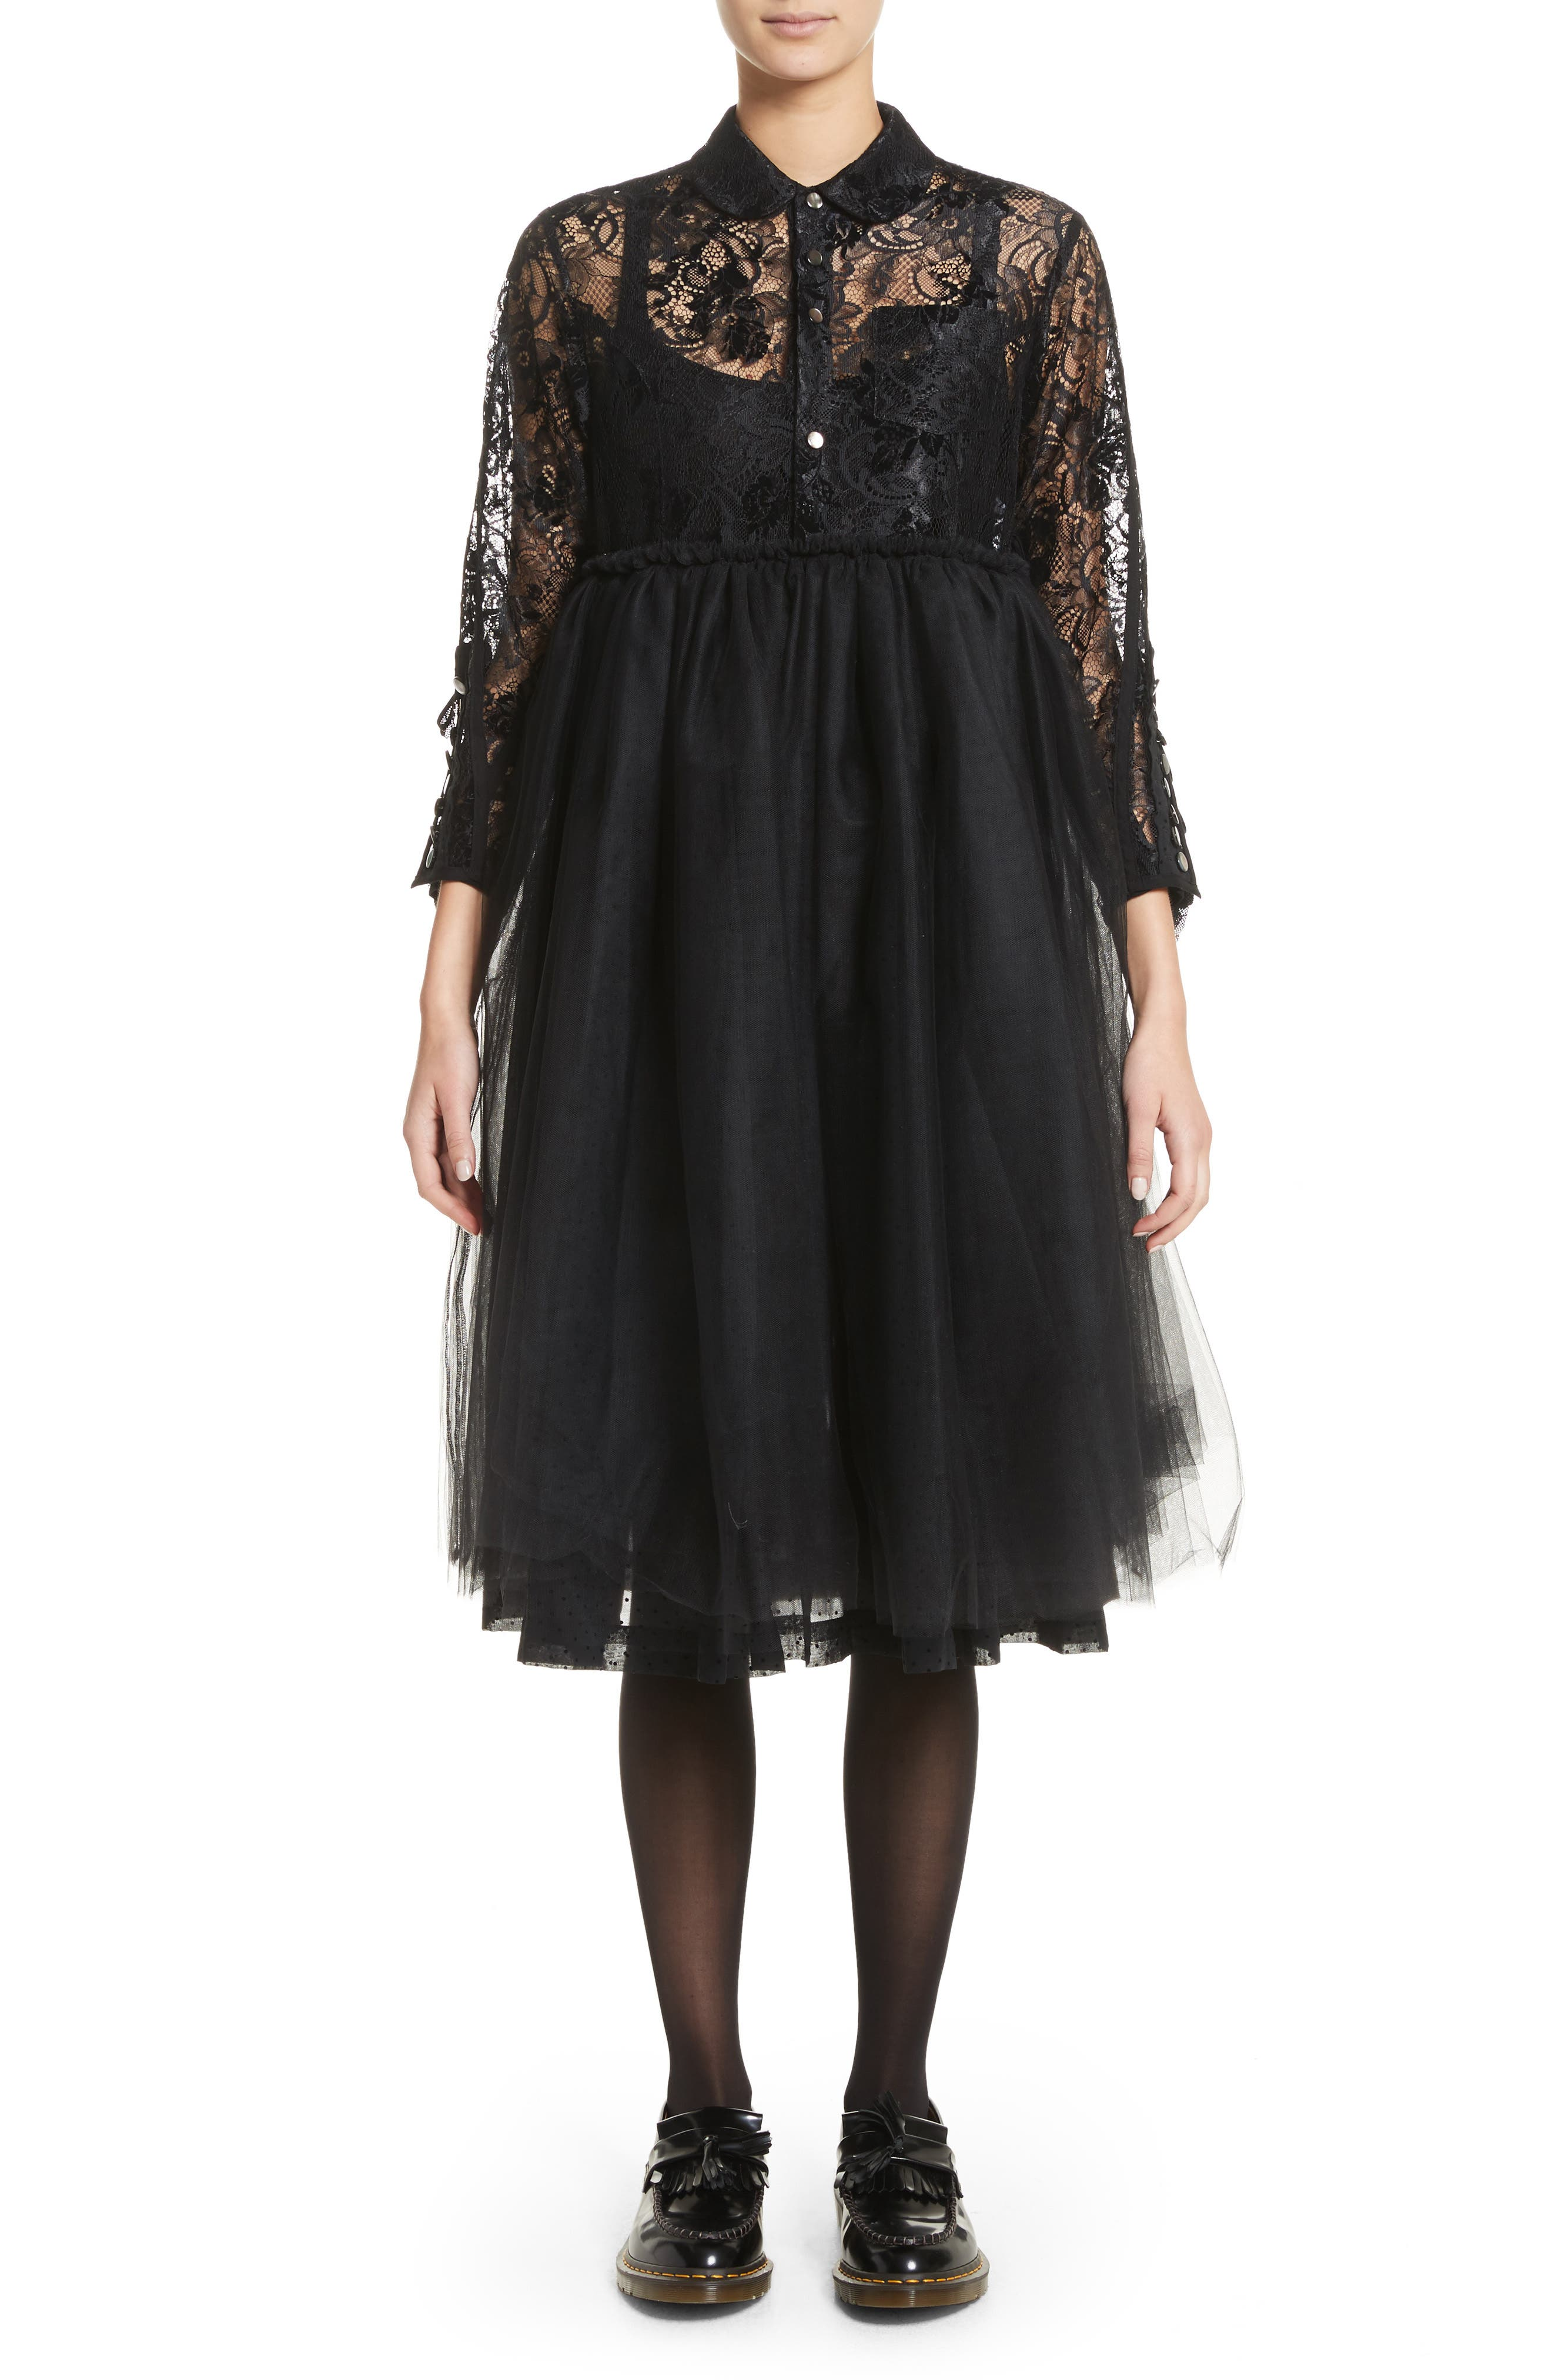 Main Image - Tricot Comme des Garçons Lace Bodice Shirtdress with Tulle Skirt